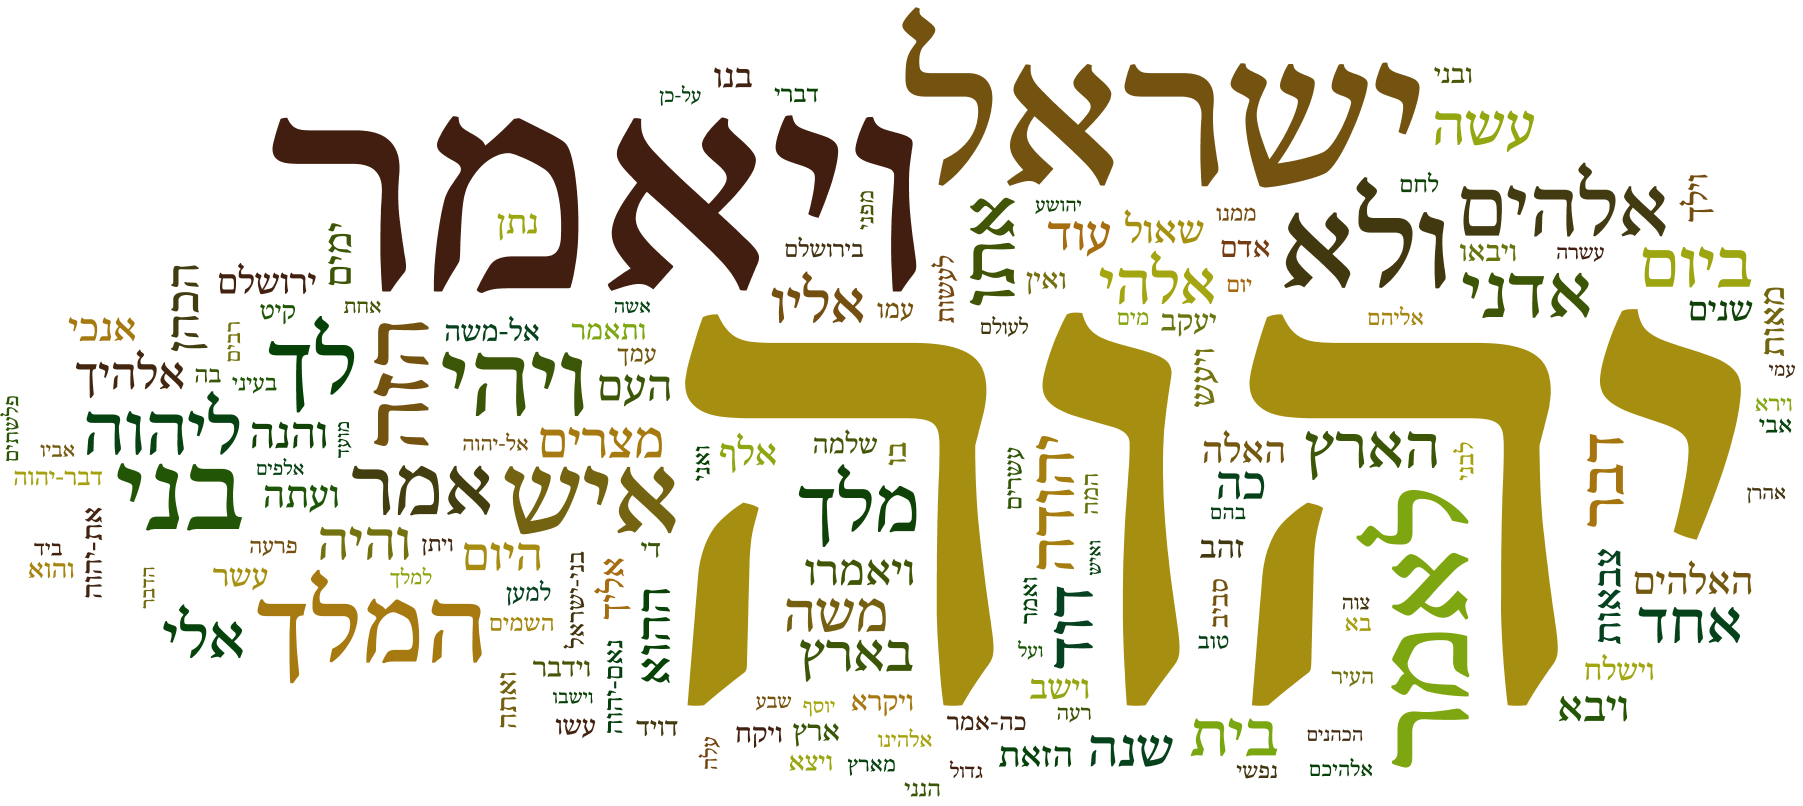 A wordle of all the text of the Tanakh. https://upload.wikimedia.org/wikipedia/commons/0/01/Hebrew_Bible_Wordle_-_%D7%A4%D7%95%D7%A1%D7%98%D7%A8_%D7%94%D7%AA%D7%A4%D7%9C%D7%92%D7%95%D7%AA_%D7%94%D7%9E%D7%9C%D7%99%D7%9D_%D7%91%D7%AA%D7%A0%22%D7%9A.png